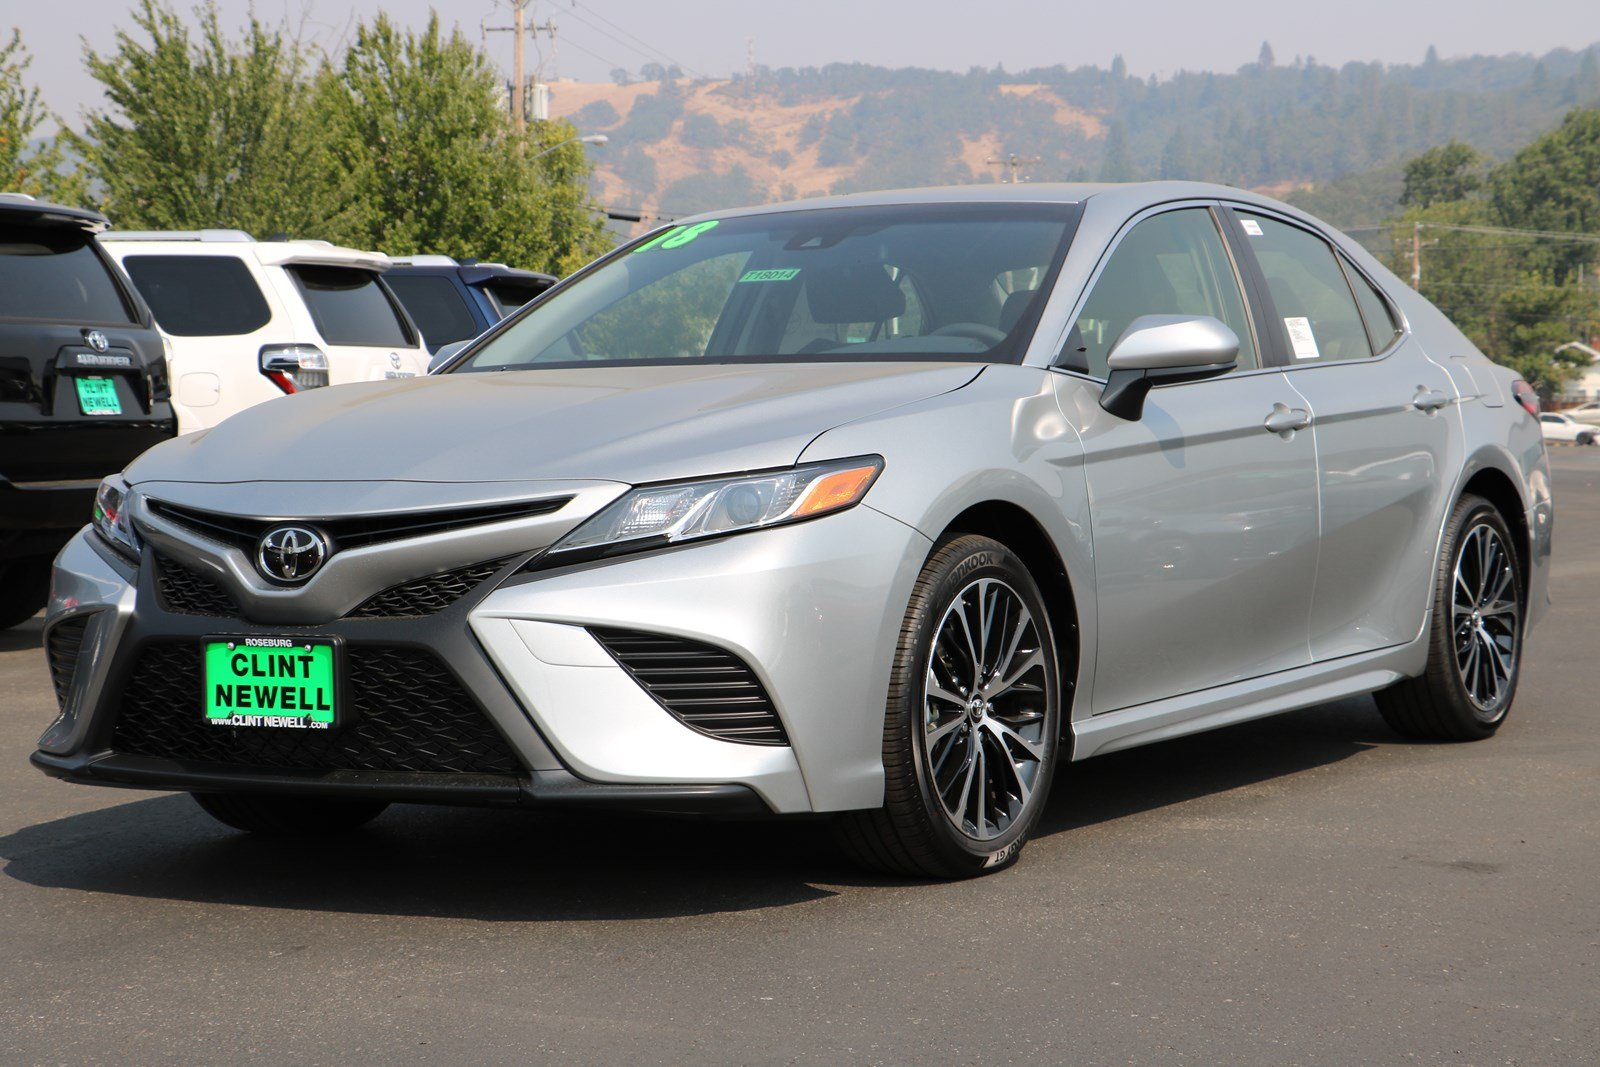 Toyota Certified Pre-Owned >> New 2018 Toyota Camry SE 4dr Car in Roseburg #T18014 | Clint Newell Toyota